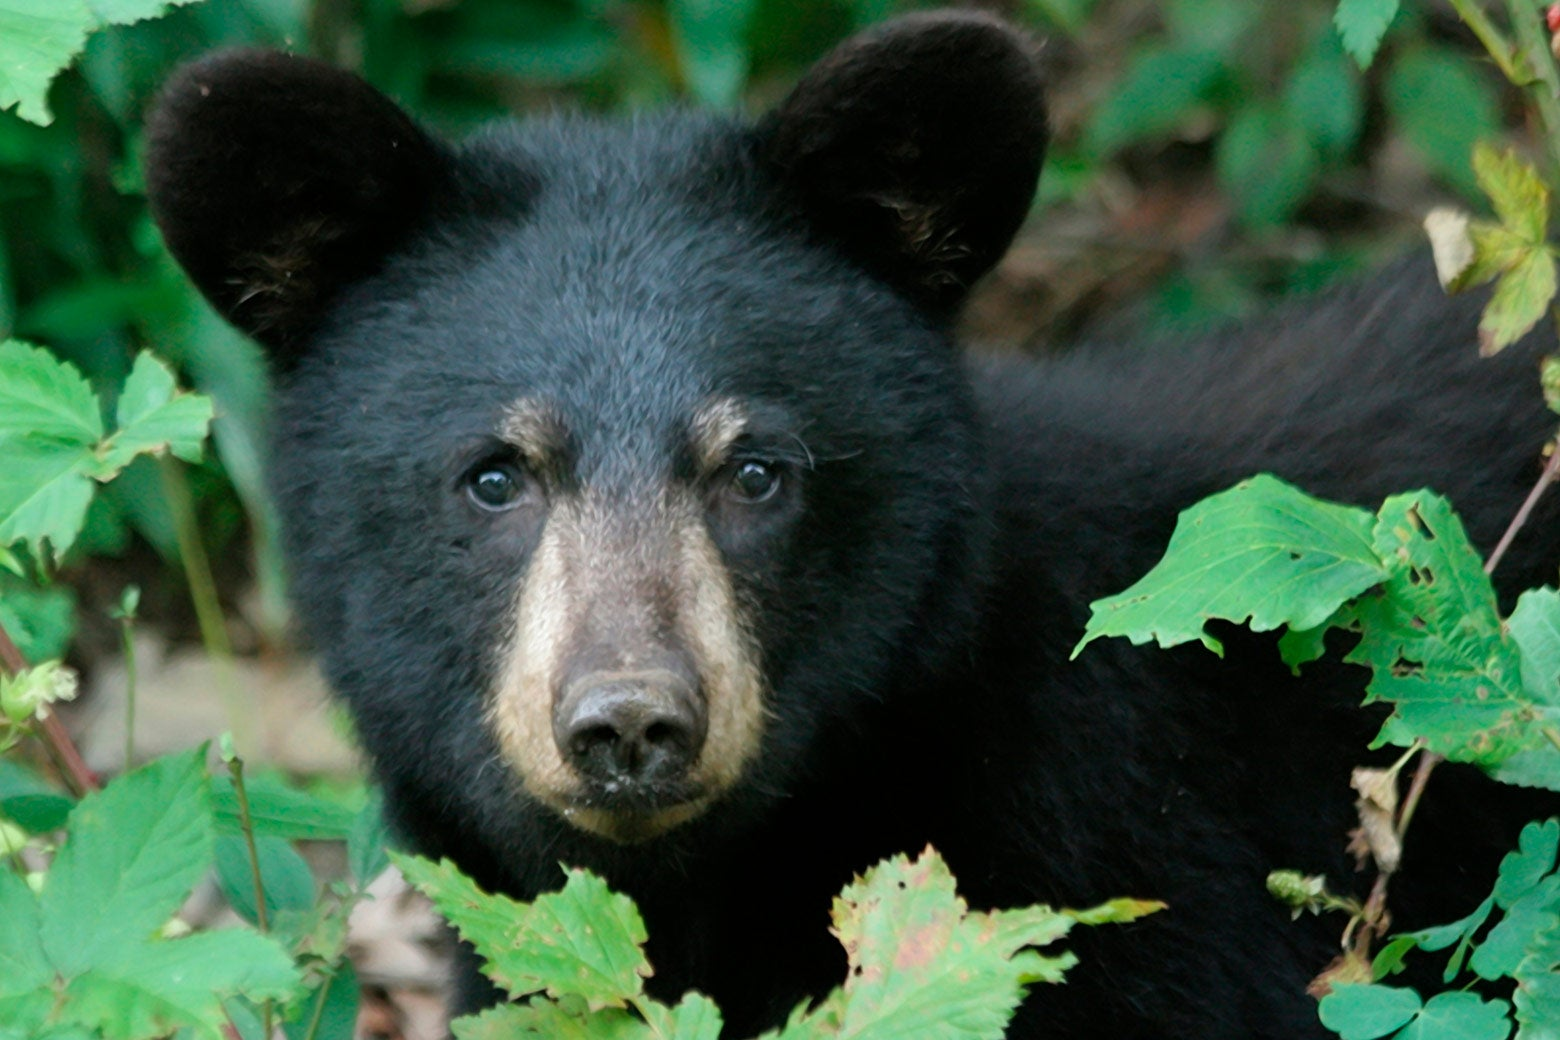 Black bear in the forrest.